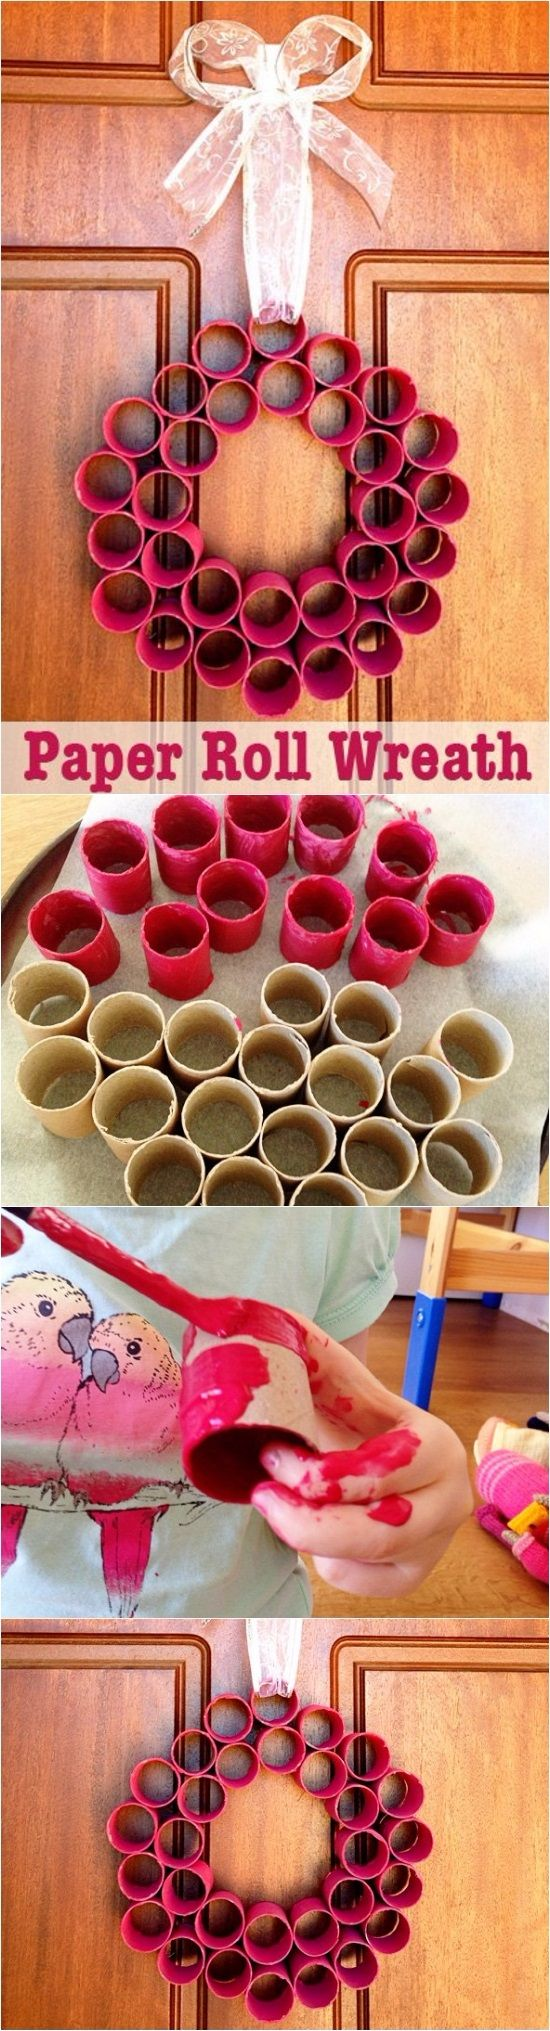 Homemade Christmas Decorations: Paper Roll Wreath | DIY Crafts Tips